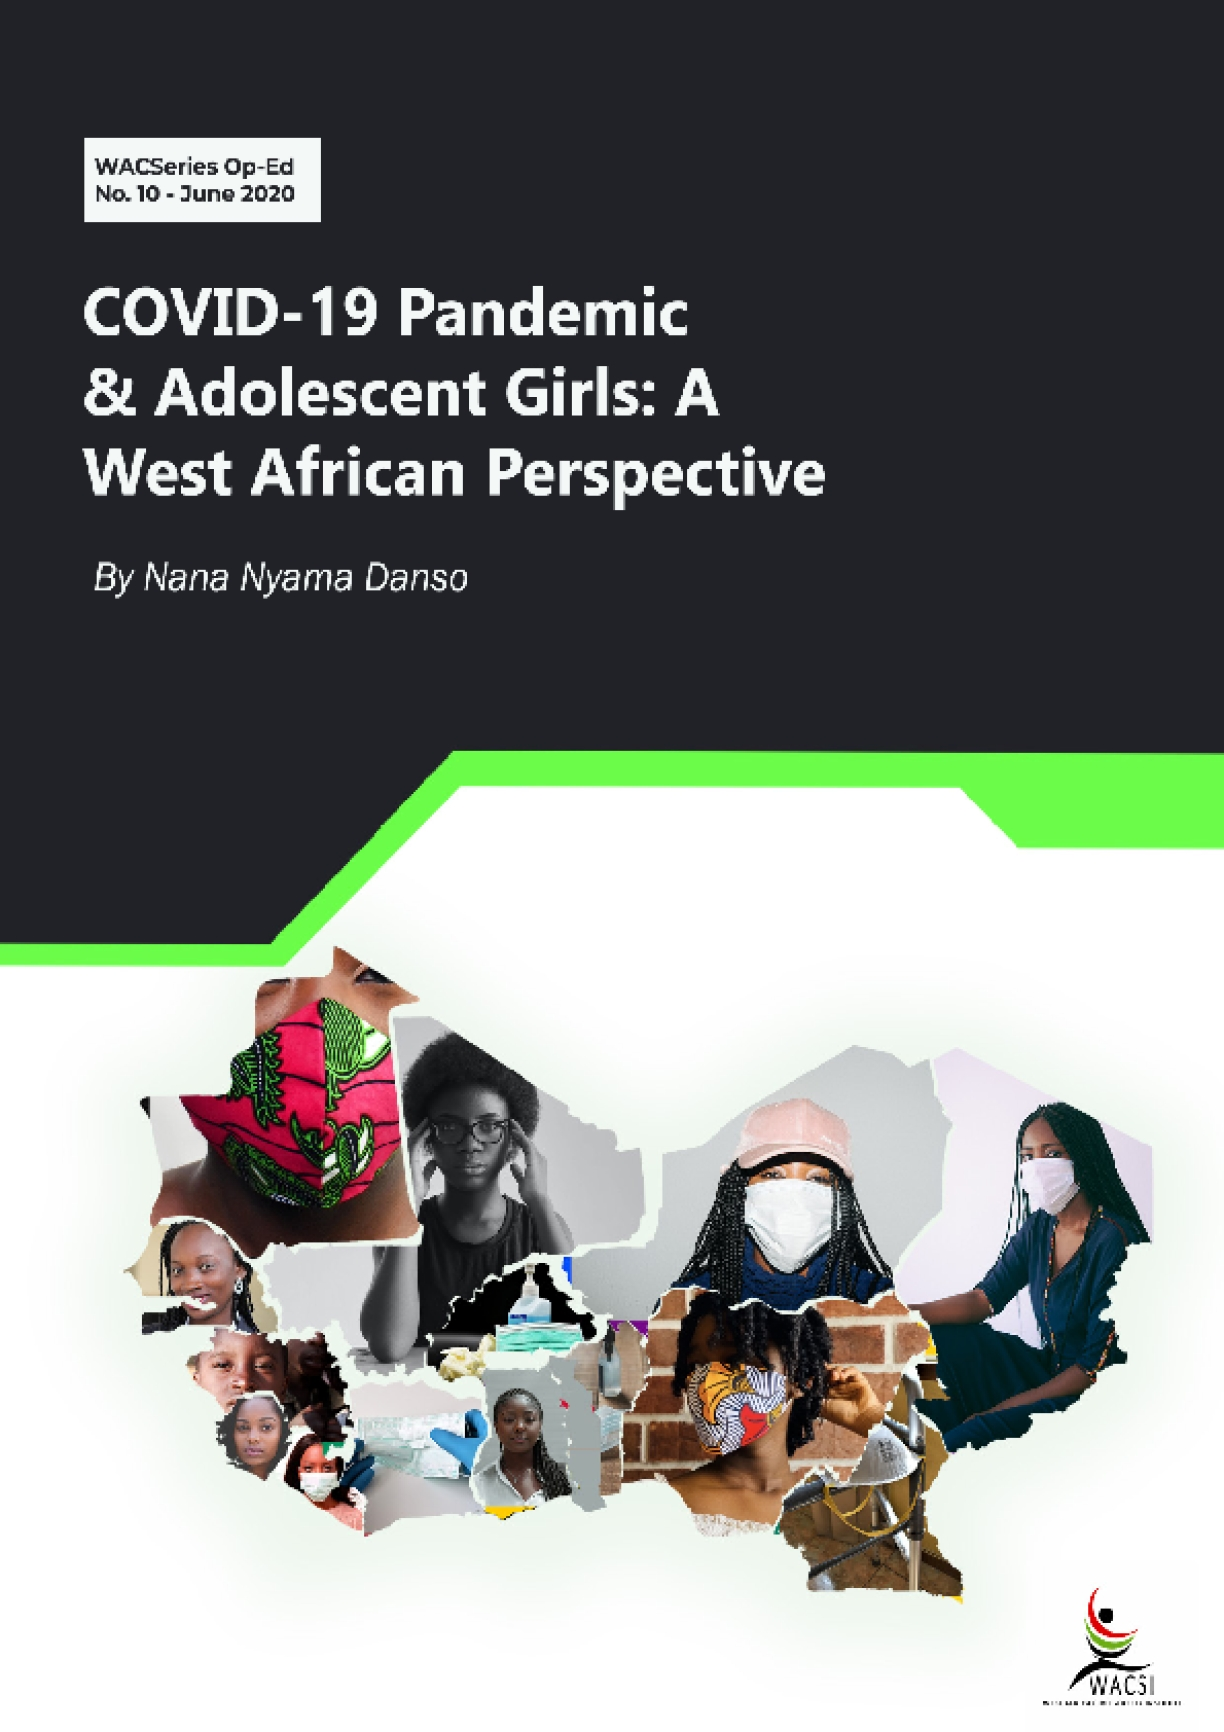 COVID-19 Pandemic and Adolescent Girls